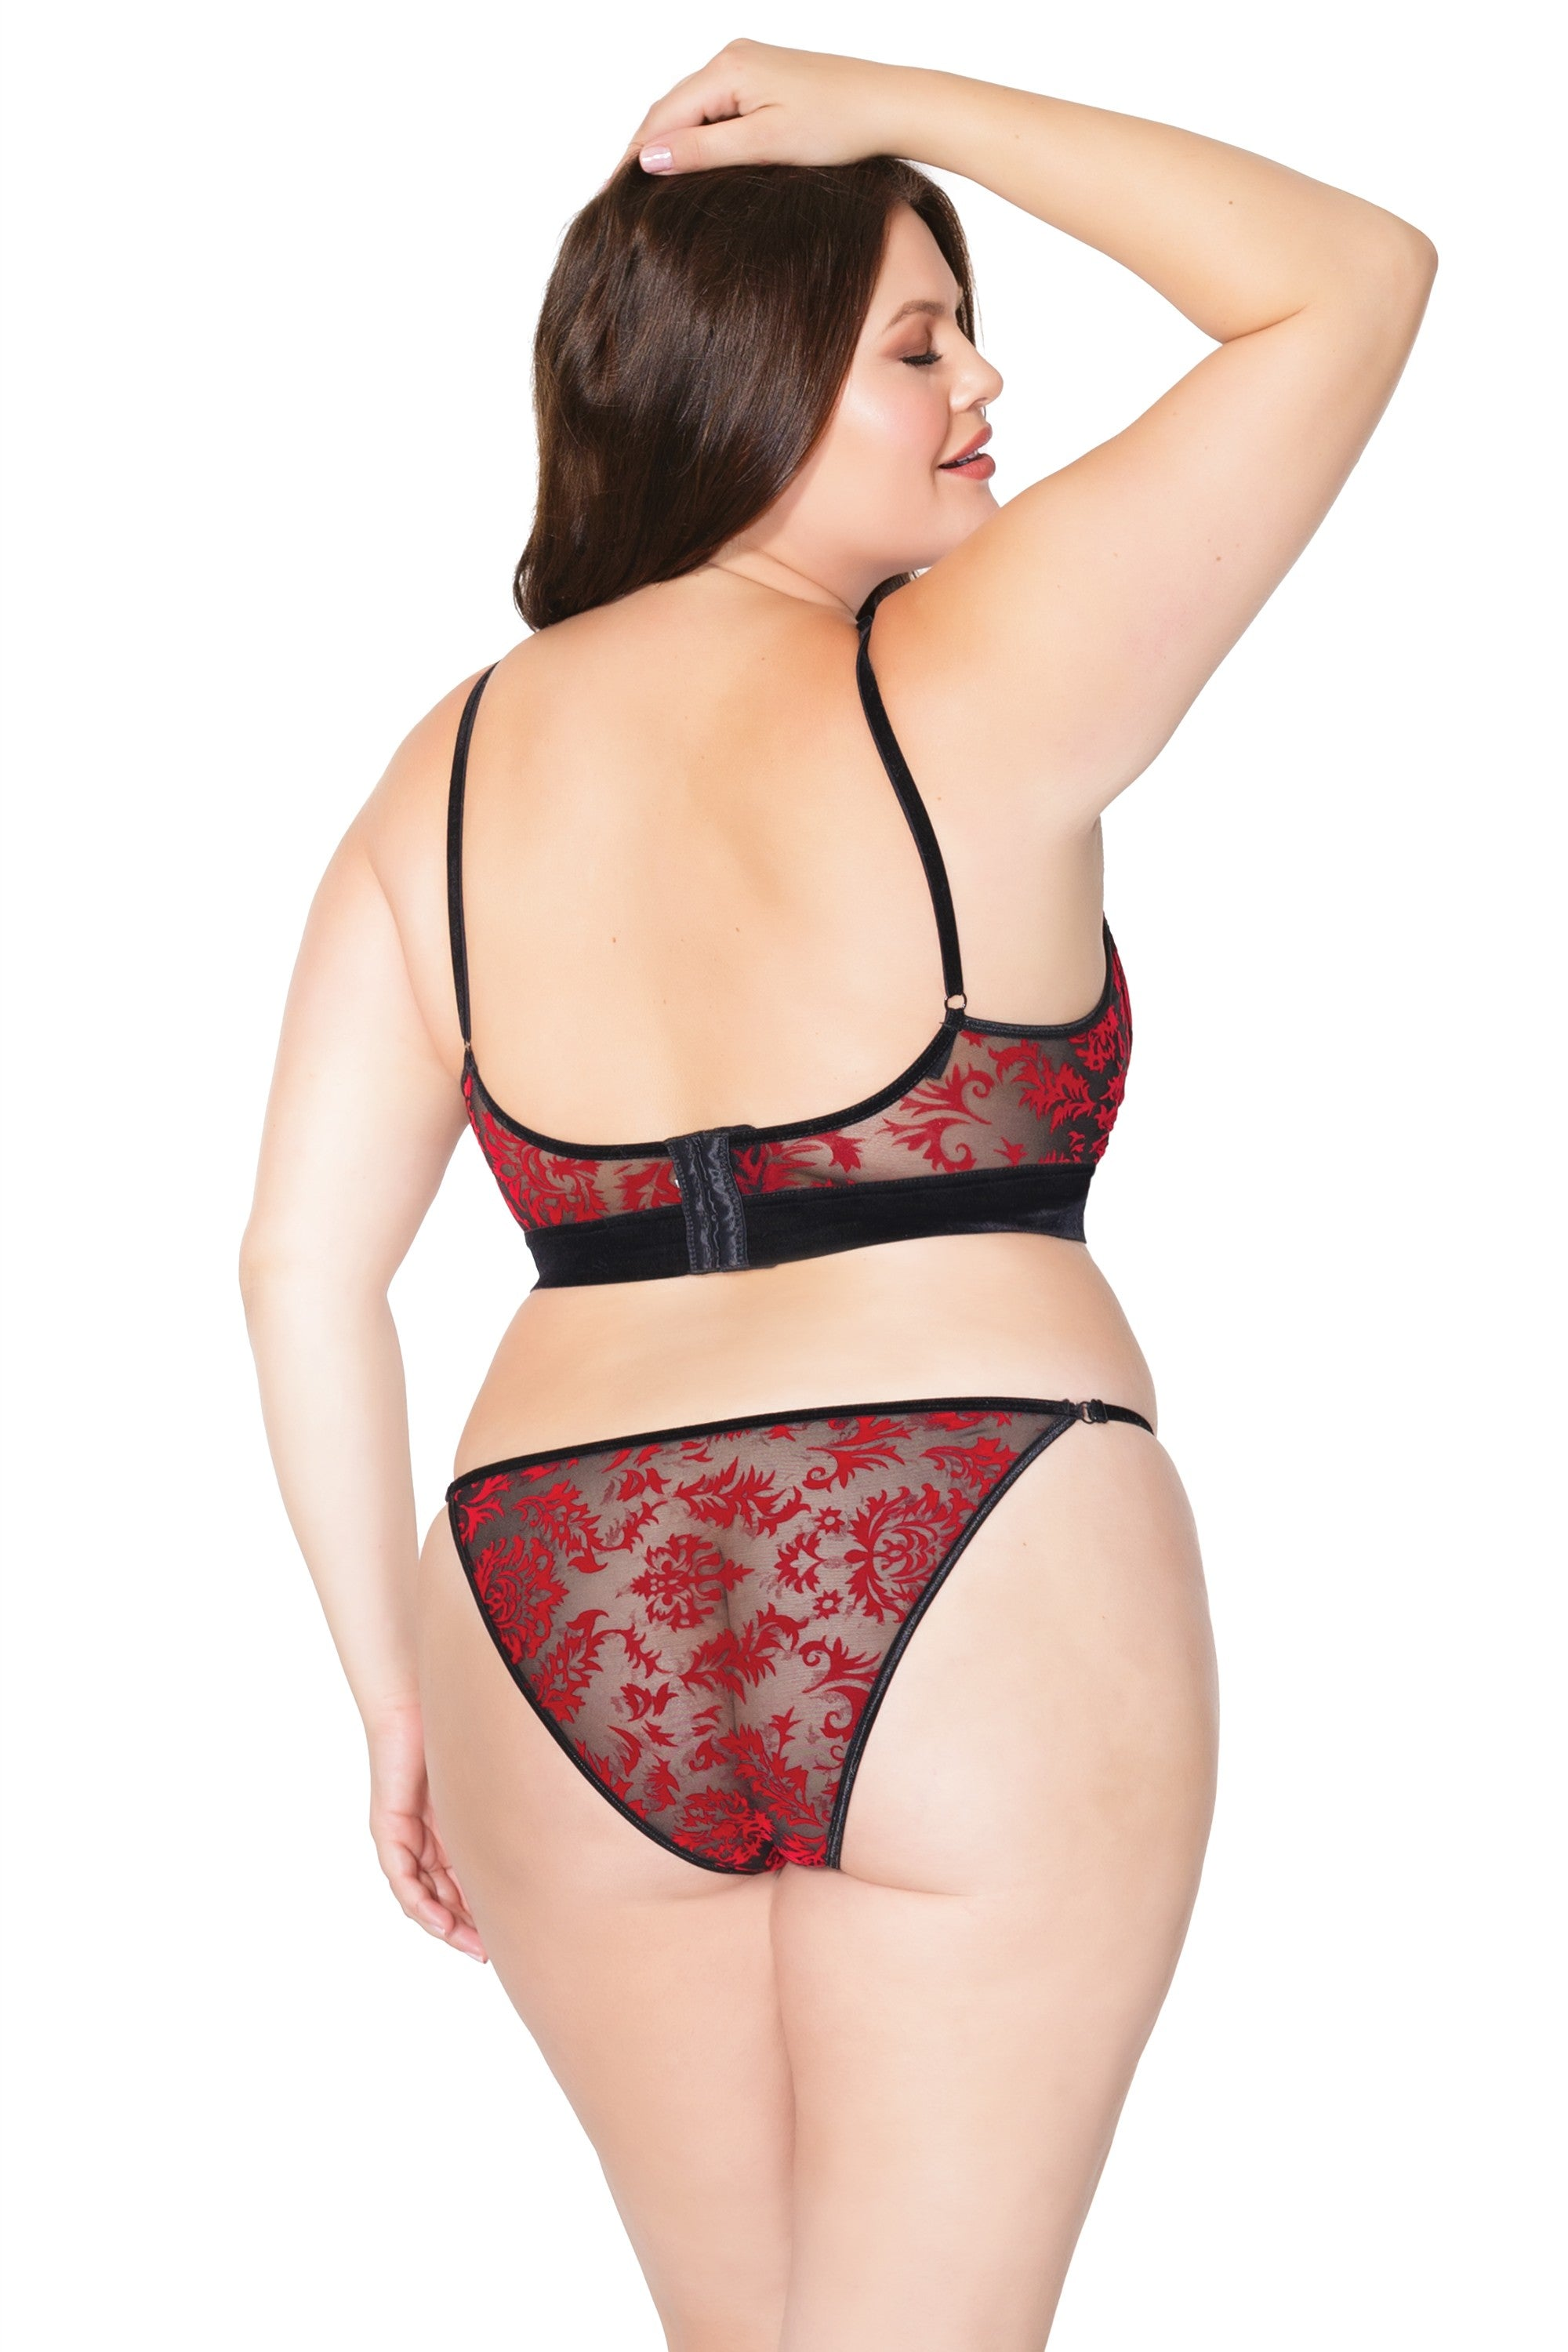 Black and Red Bra & Panty (20307)